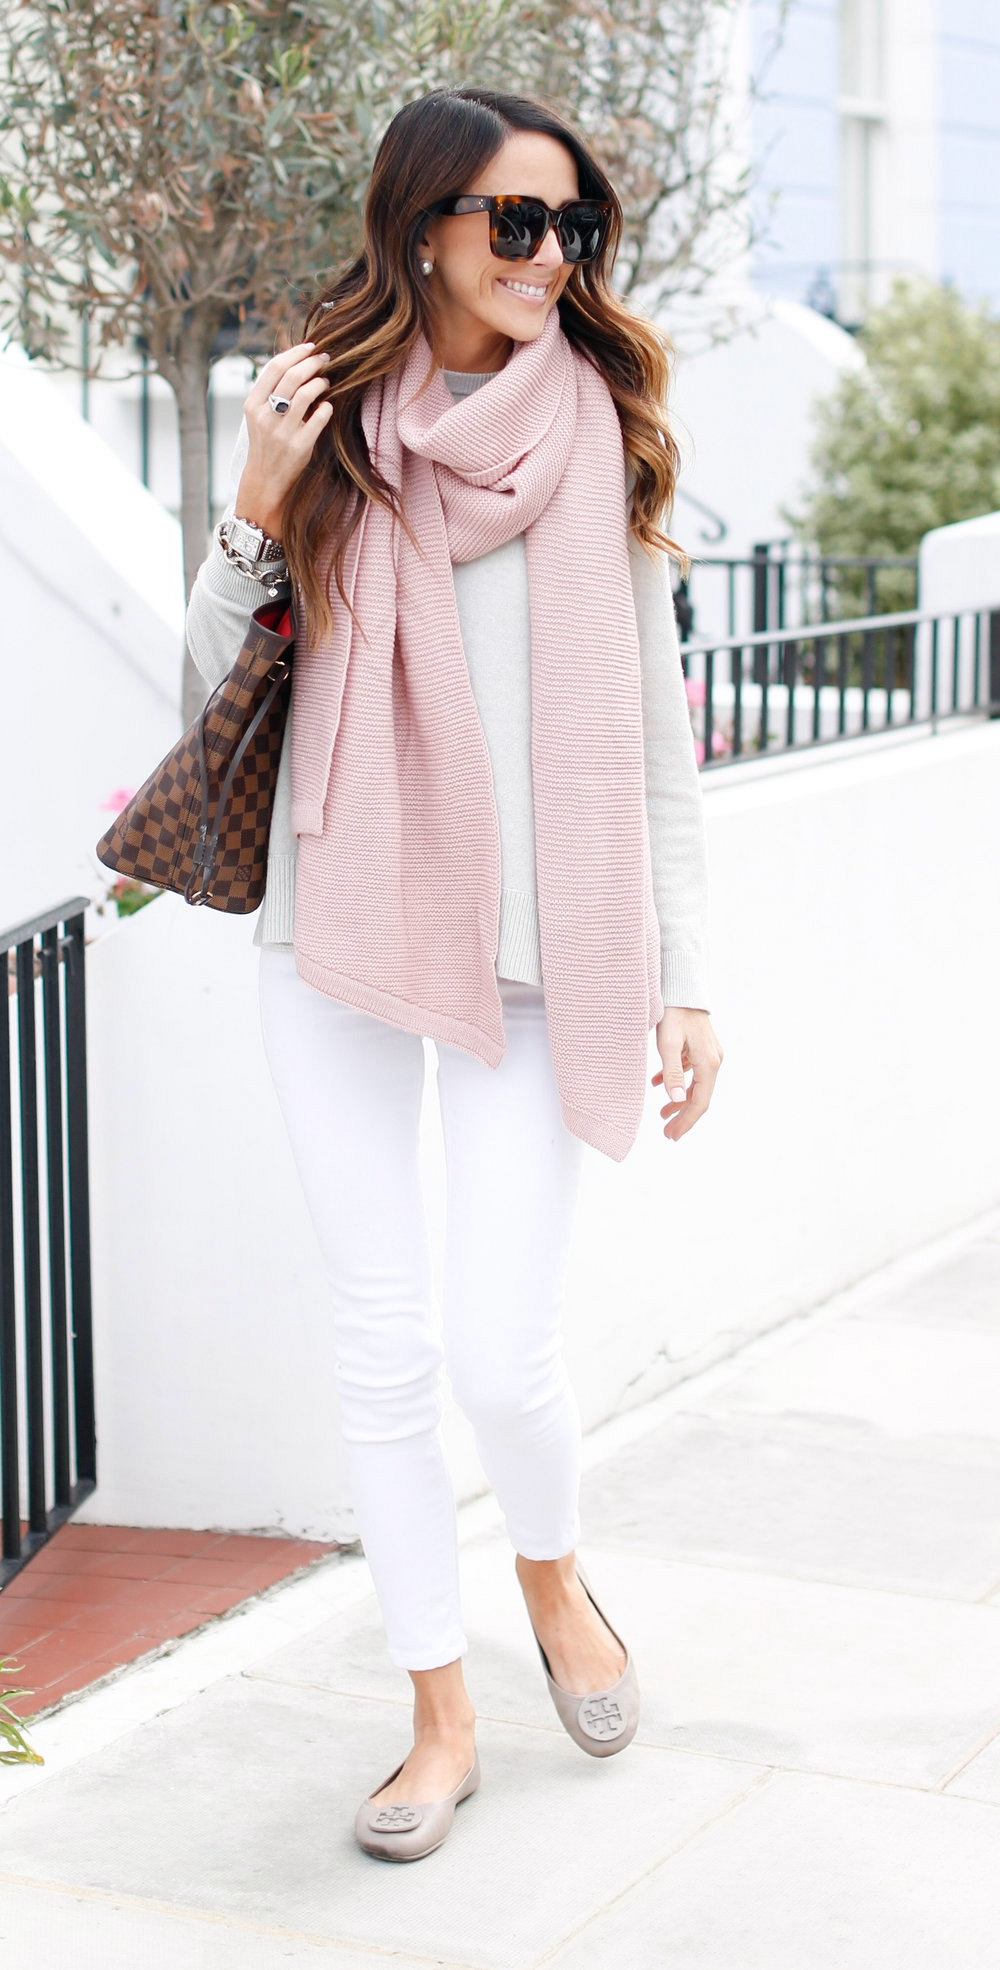 Incredible Outfit Ideas to Try Now